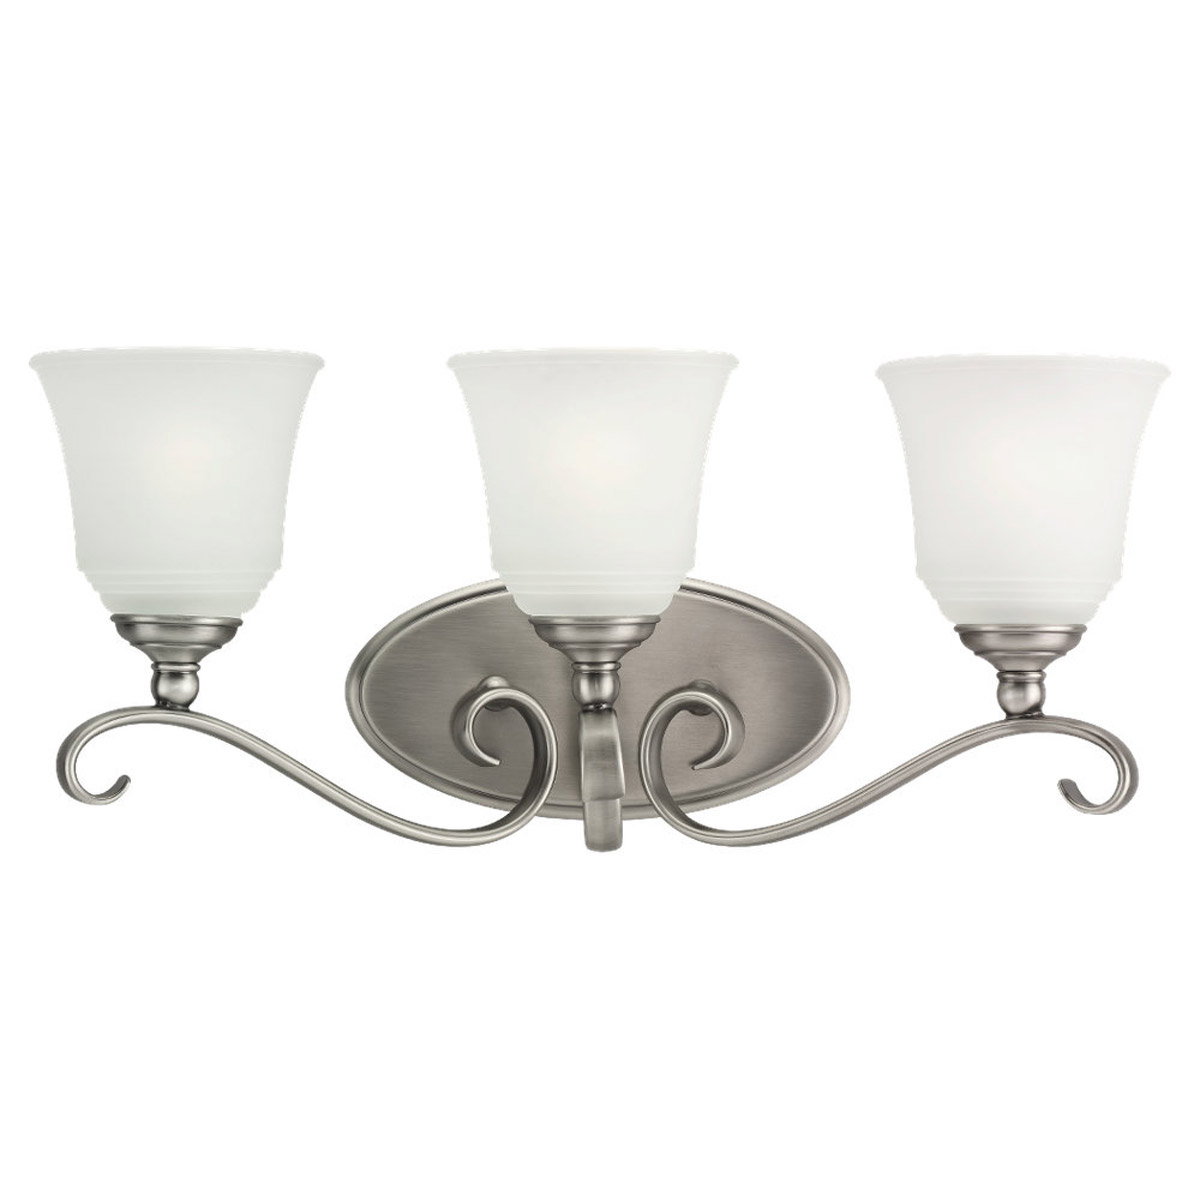 Sea Gull Lighting Parkview 3 Light Bath Vanity in Antique Brushed Nickel 49382BLE-965 photo